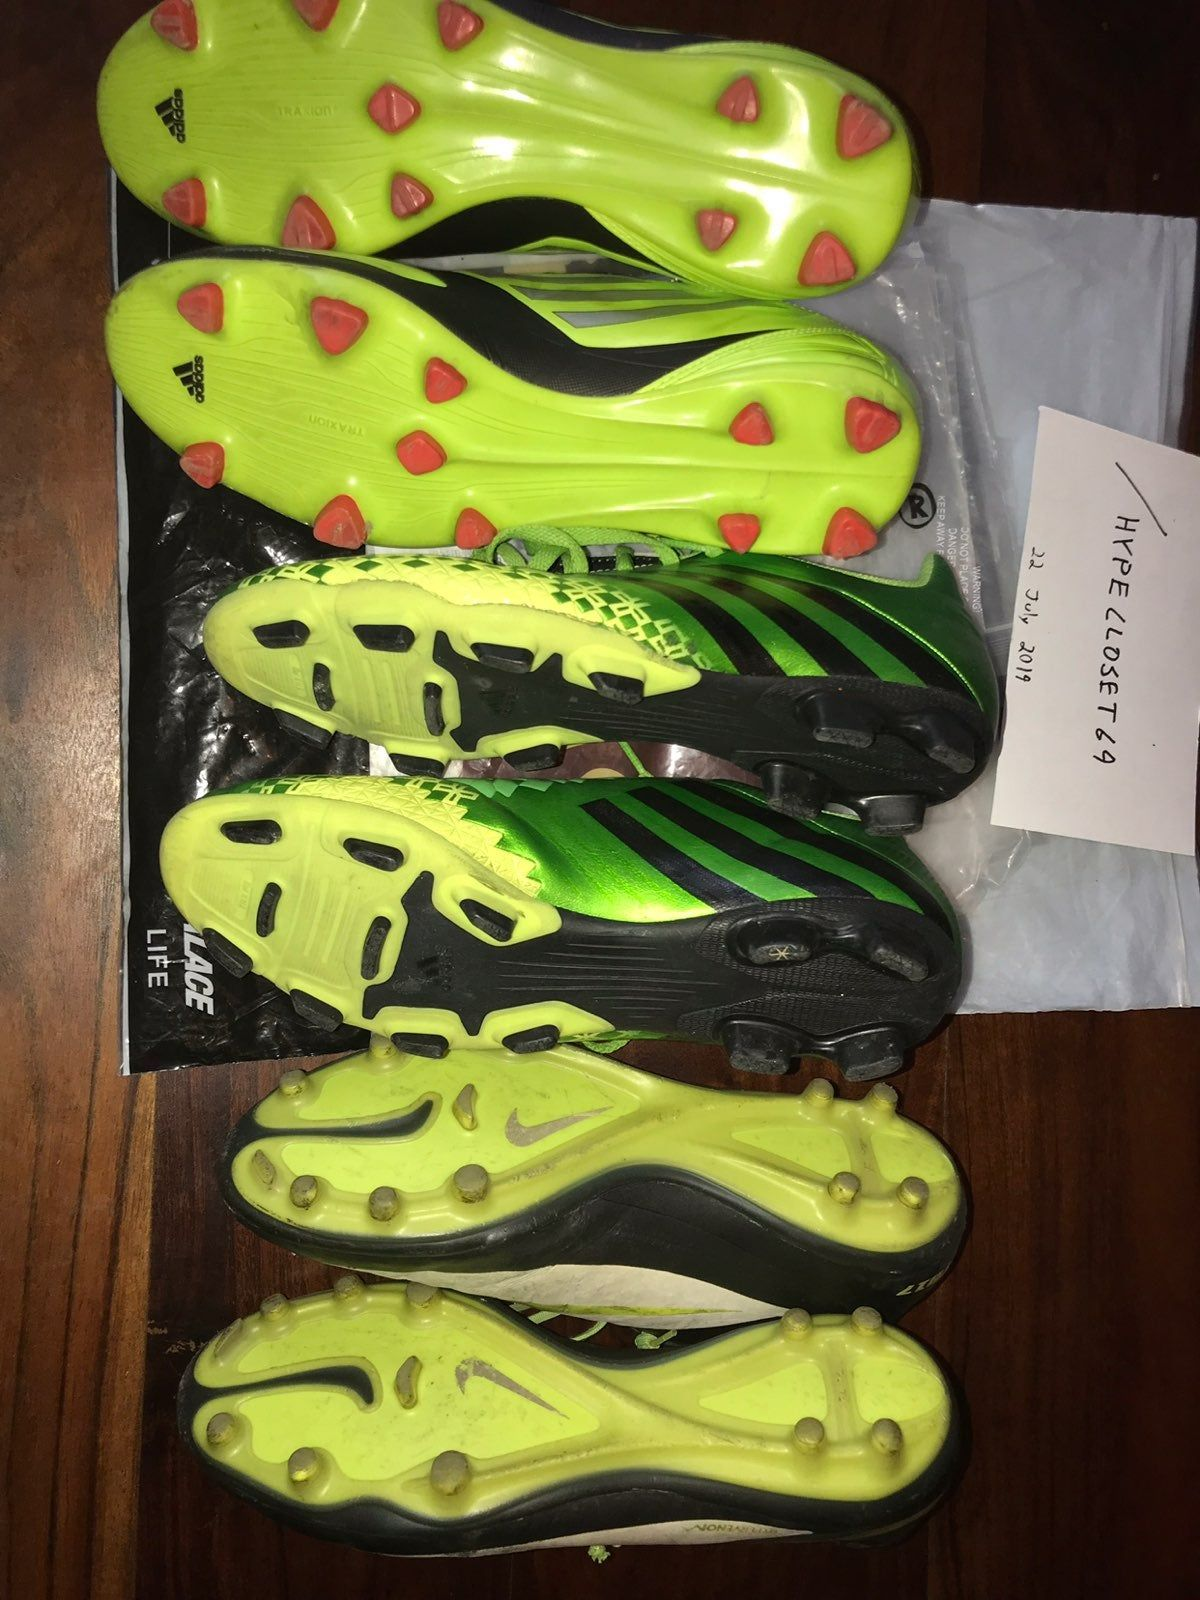 3 pairs of quality soccer cleats size 10959 adidas